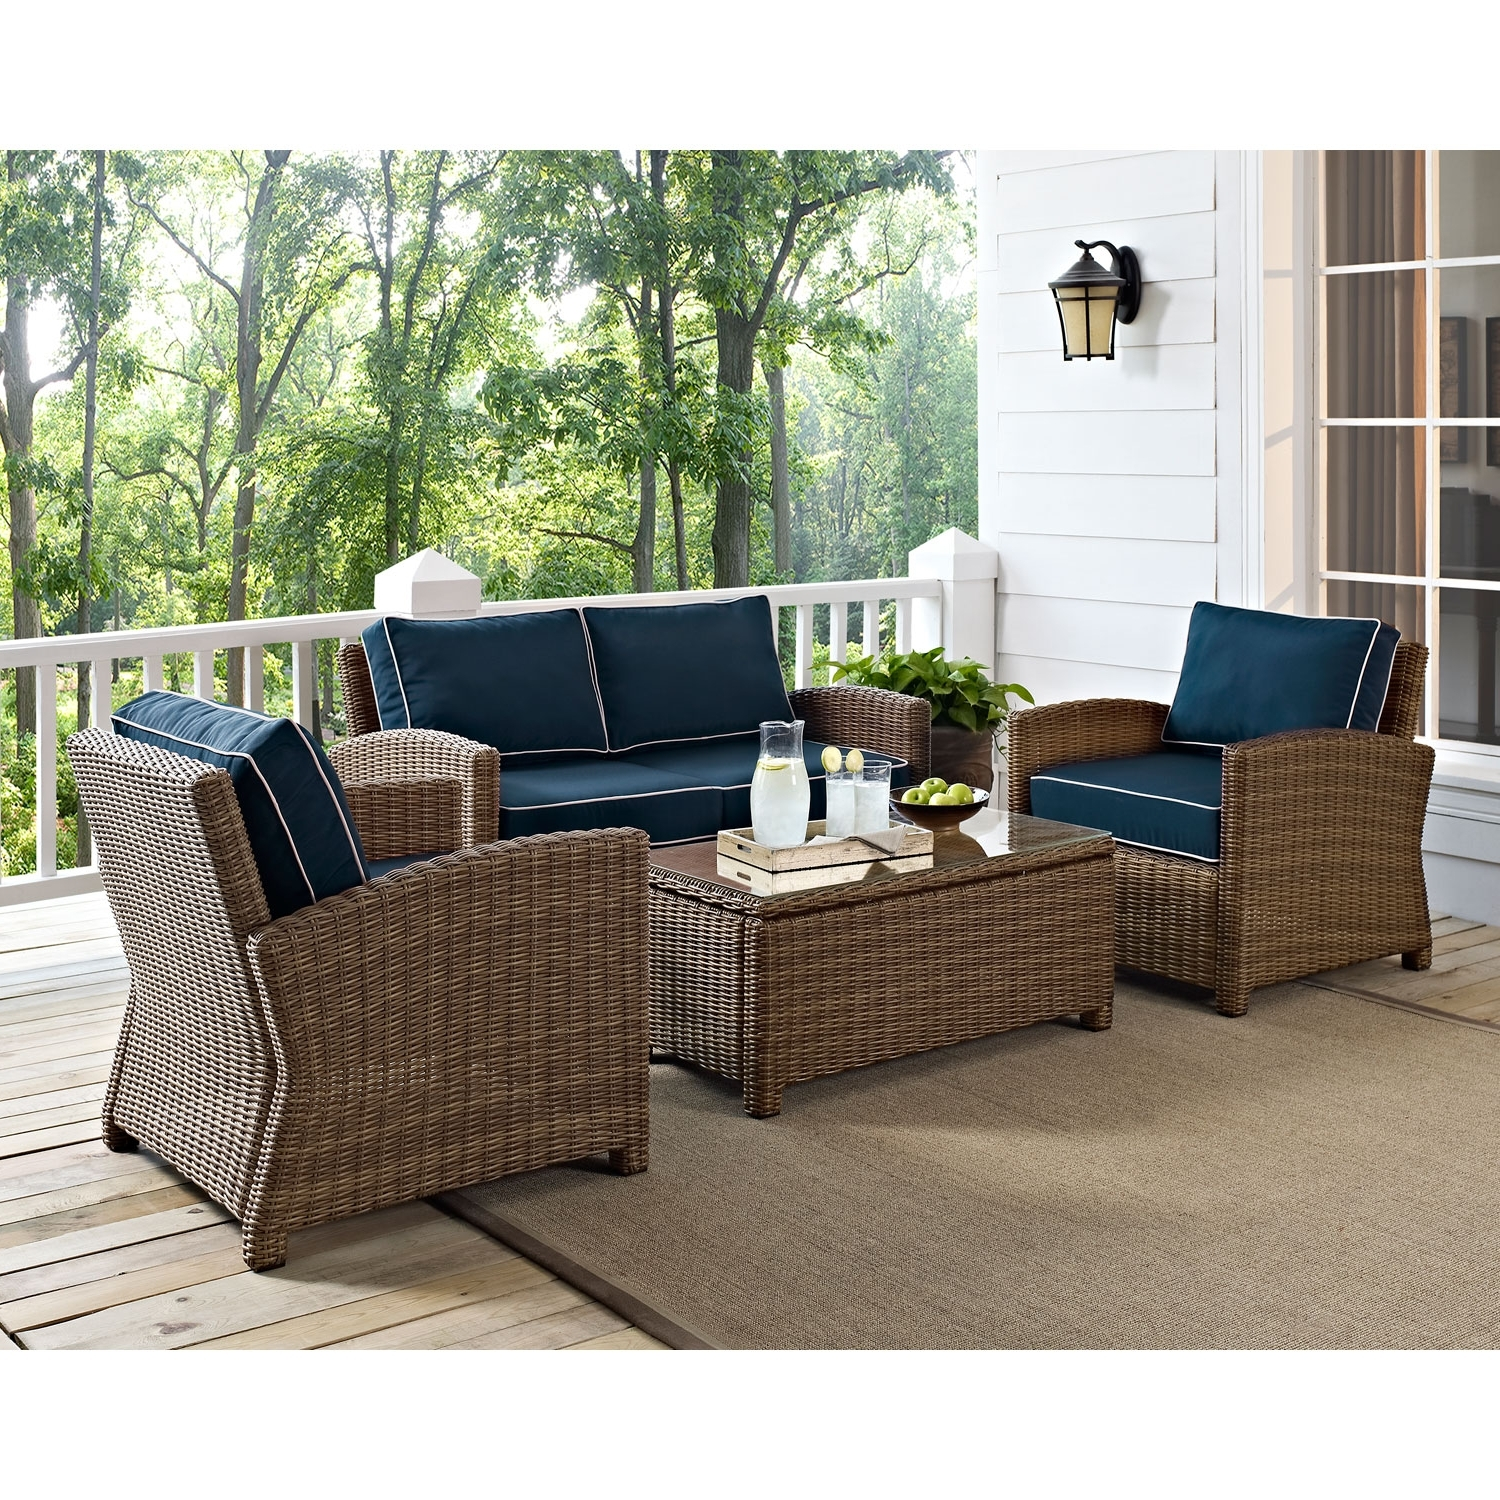 Patio Conversation Sets With Cushions Regarding Most Recently Released Crosley Furniture Bradenton 4 Piece Outdoor Wicker Seating Set With (View 11 of 15)